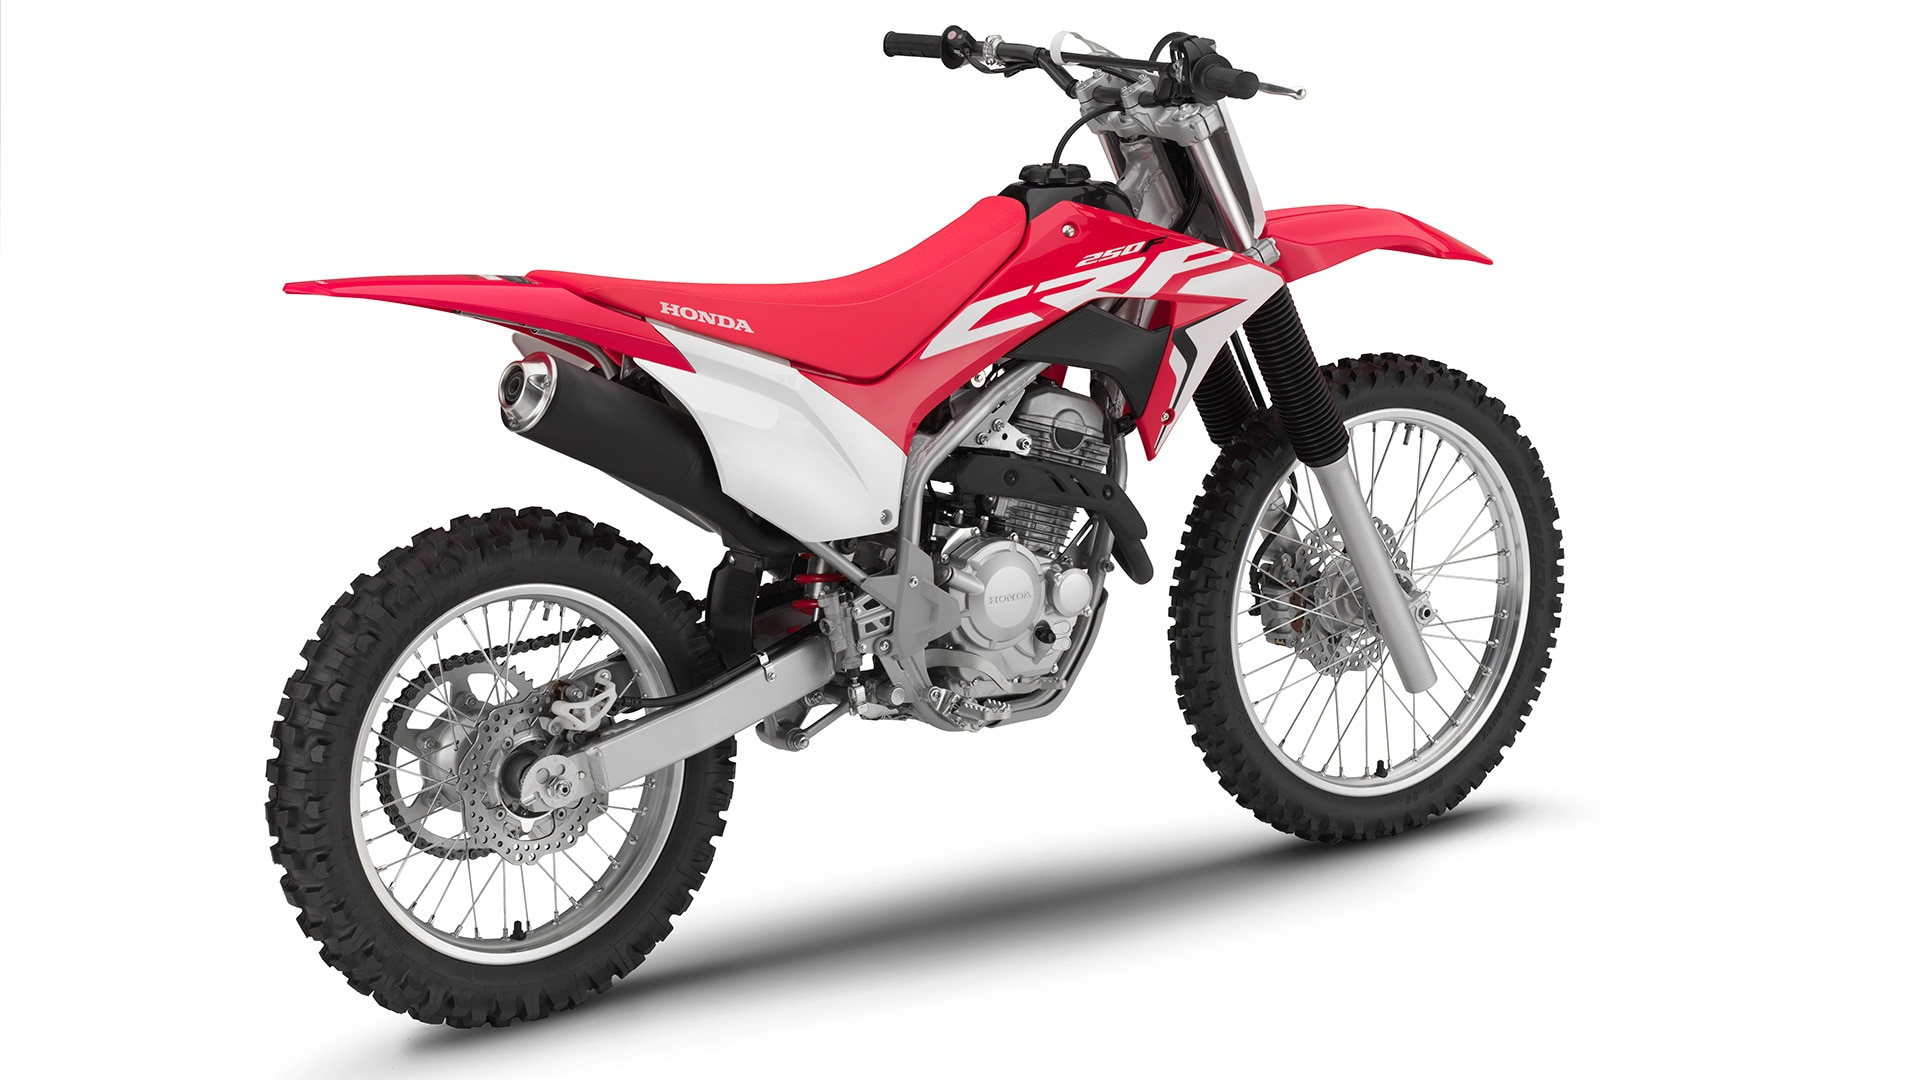 CRF250F > Dominate on every trail